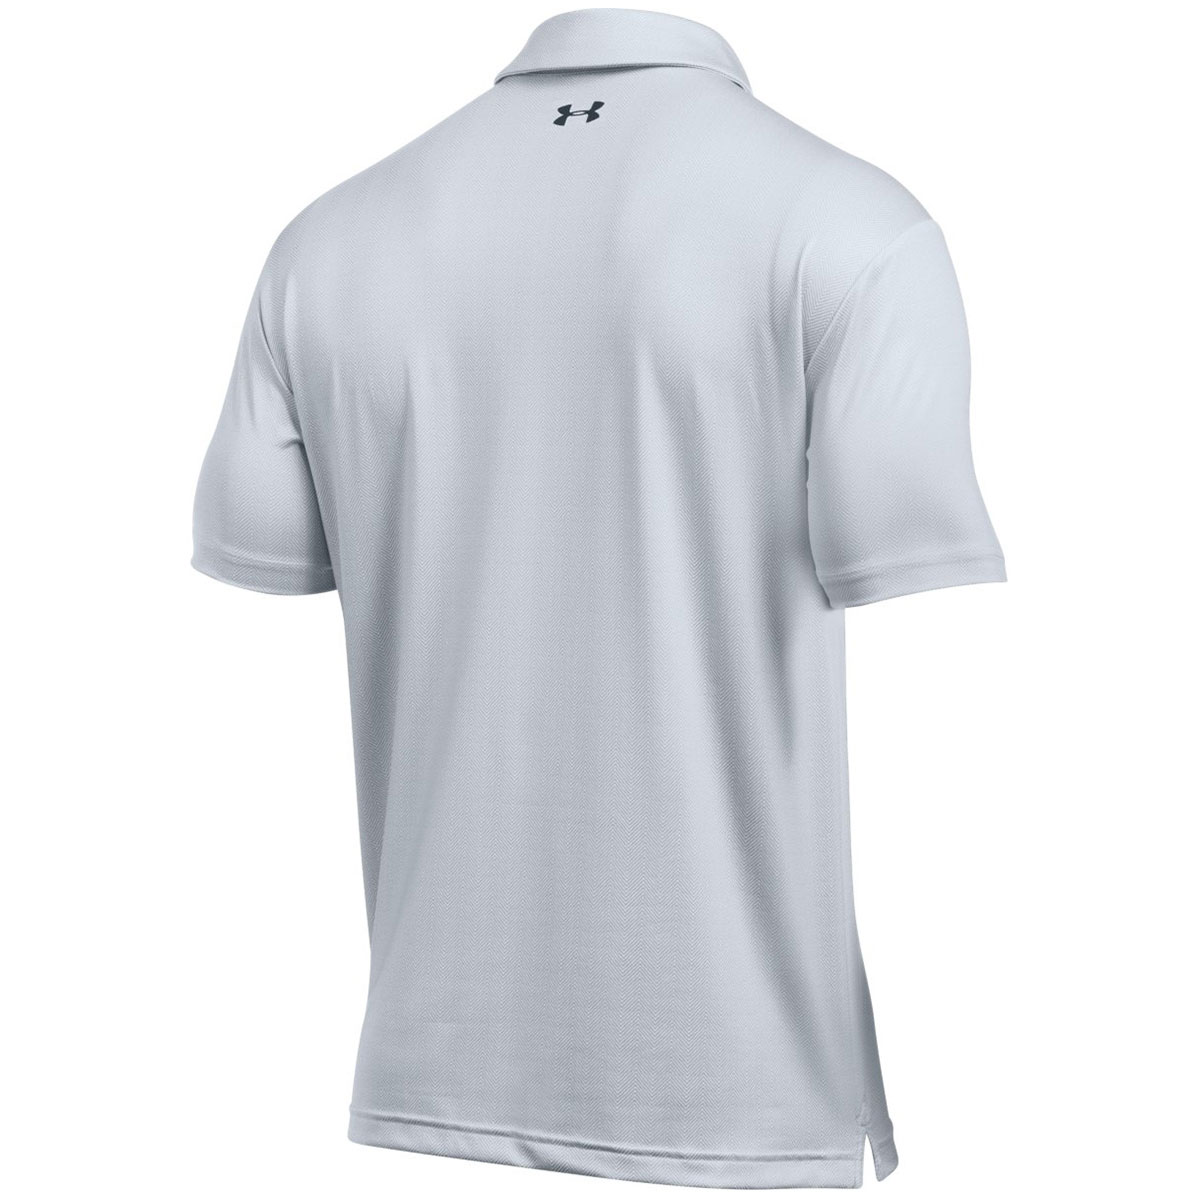 Under-Armour-Mens-UA-Playoff-Performance-Golf-Polo-Shirt-33-OFF-RRP thumbnail 69